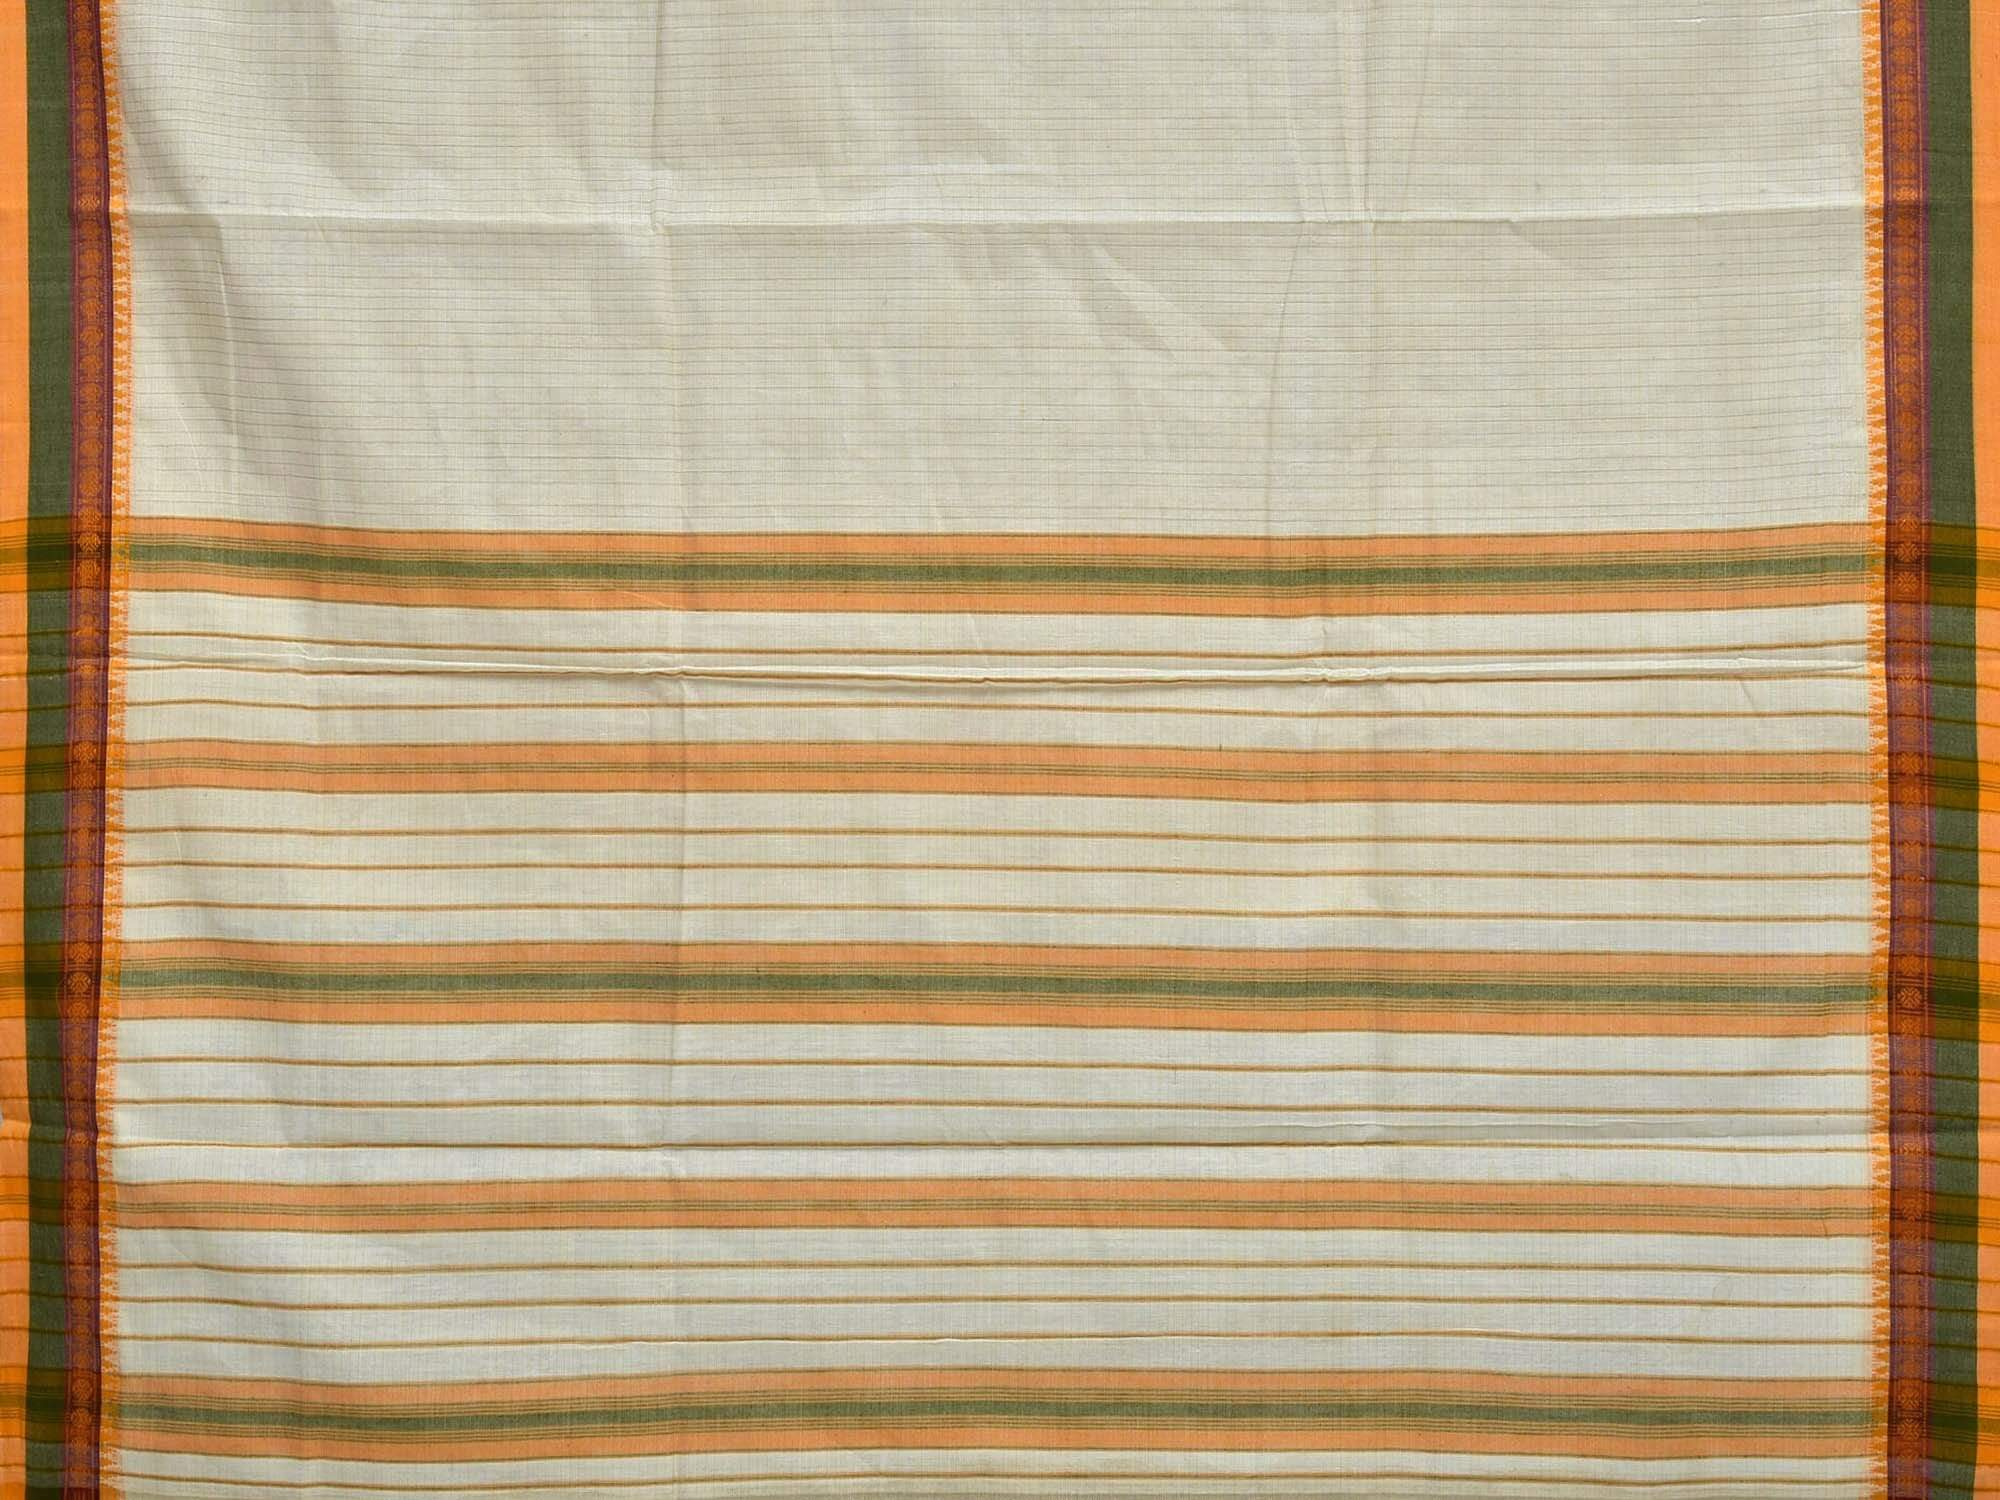 White Narayanpet Cotton Handloom Saree with Strips Design No Blouse np0193